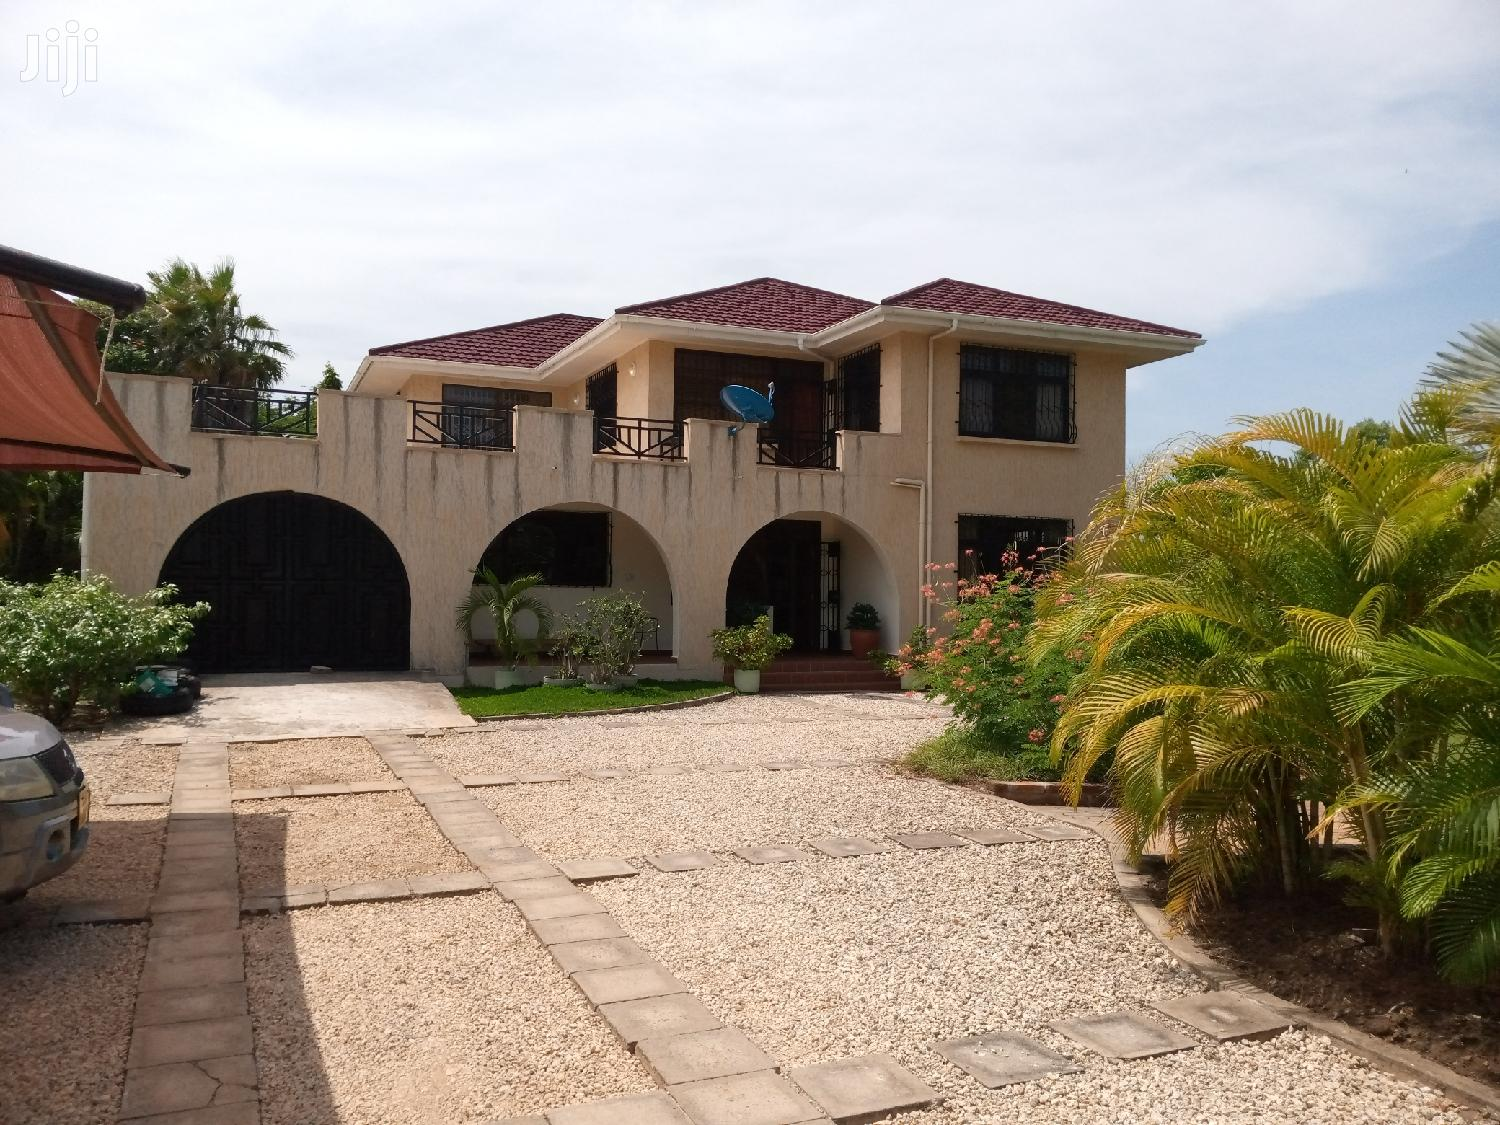 5 Bedrooms House At Mbezi Beach For Rent